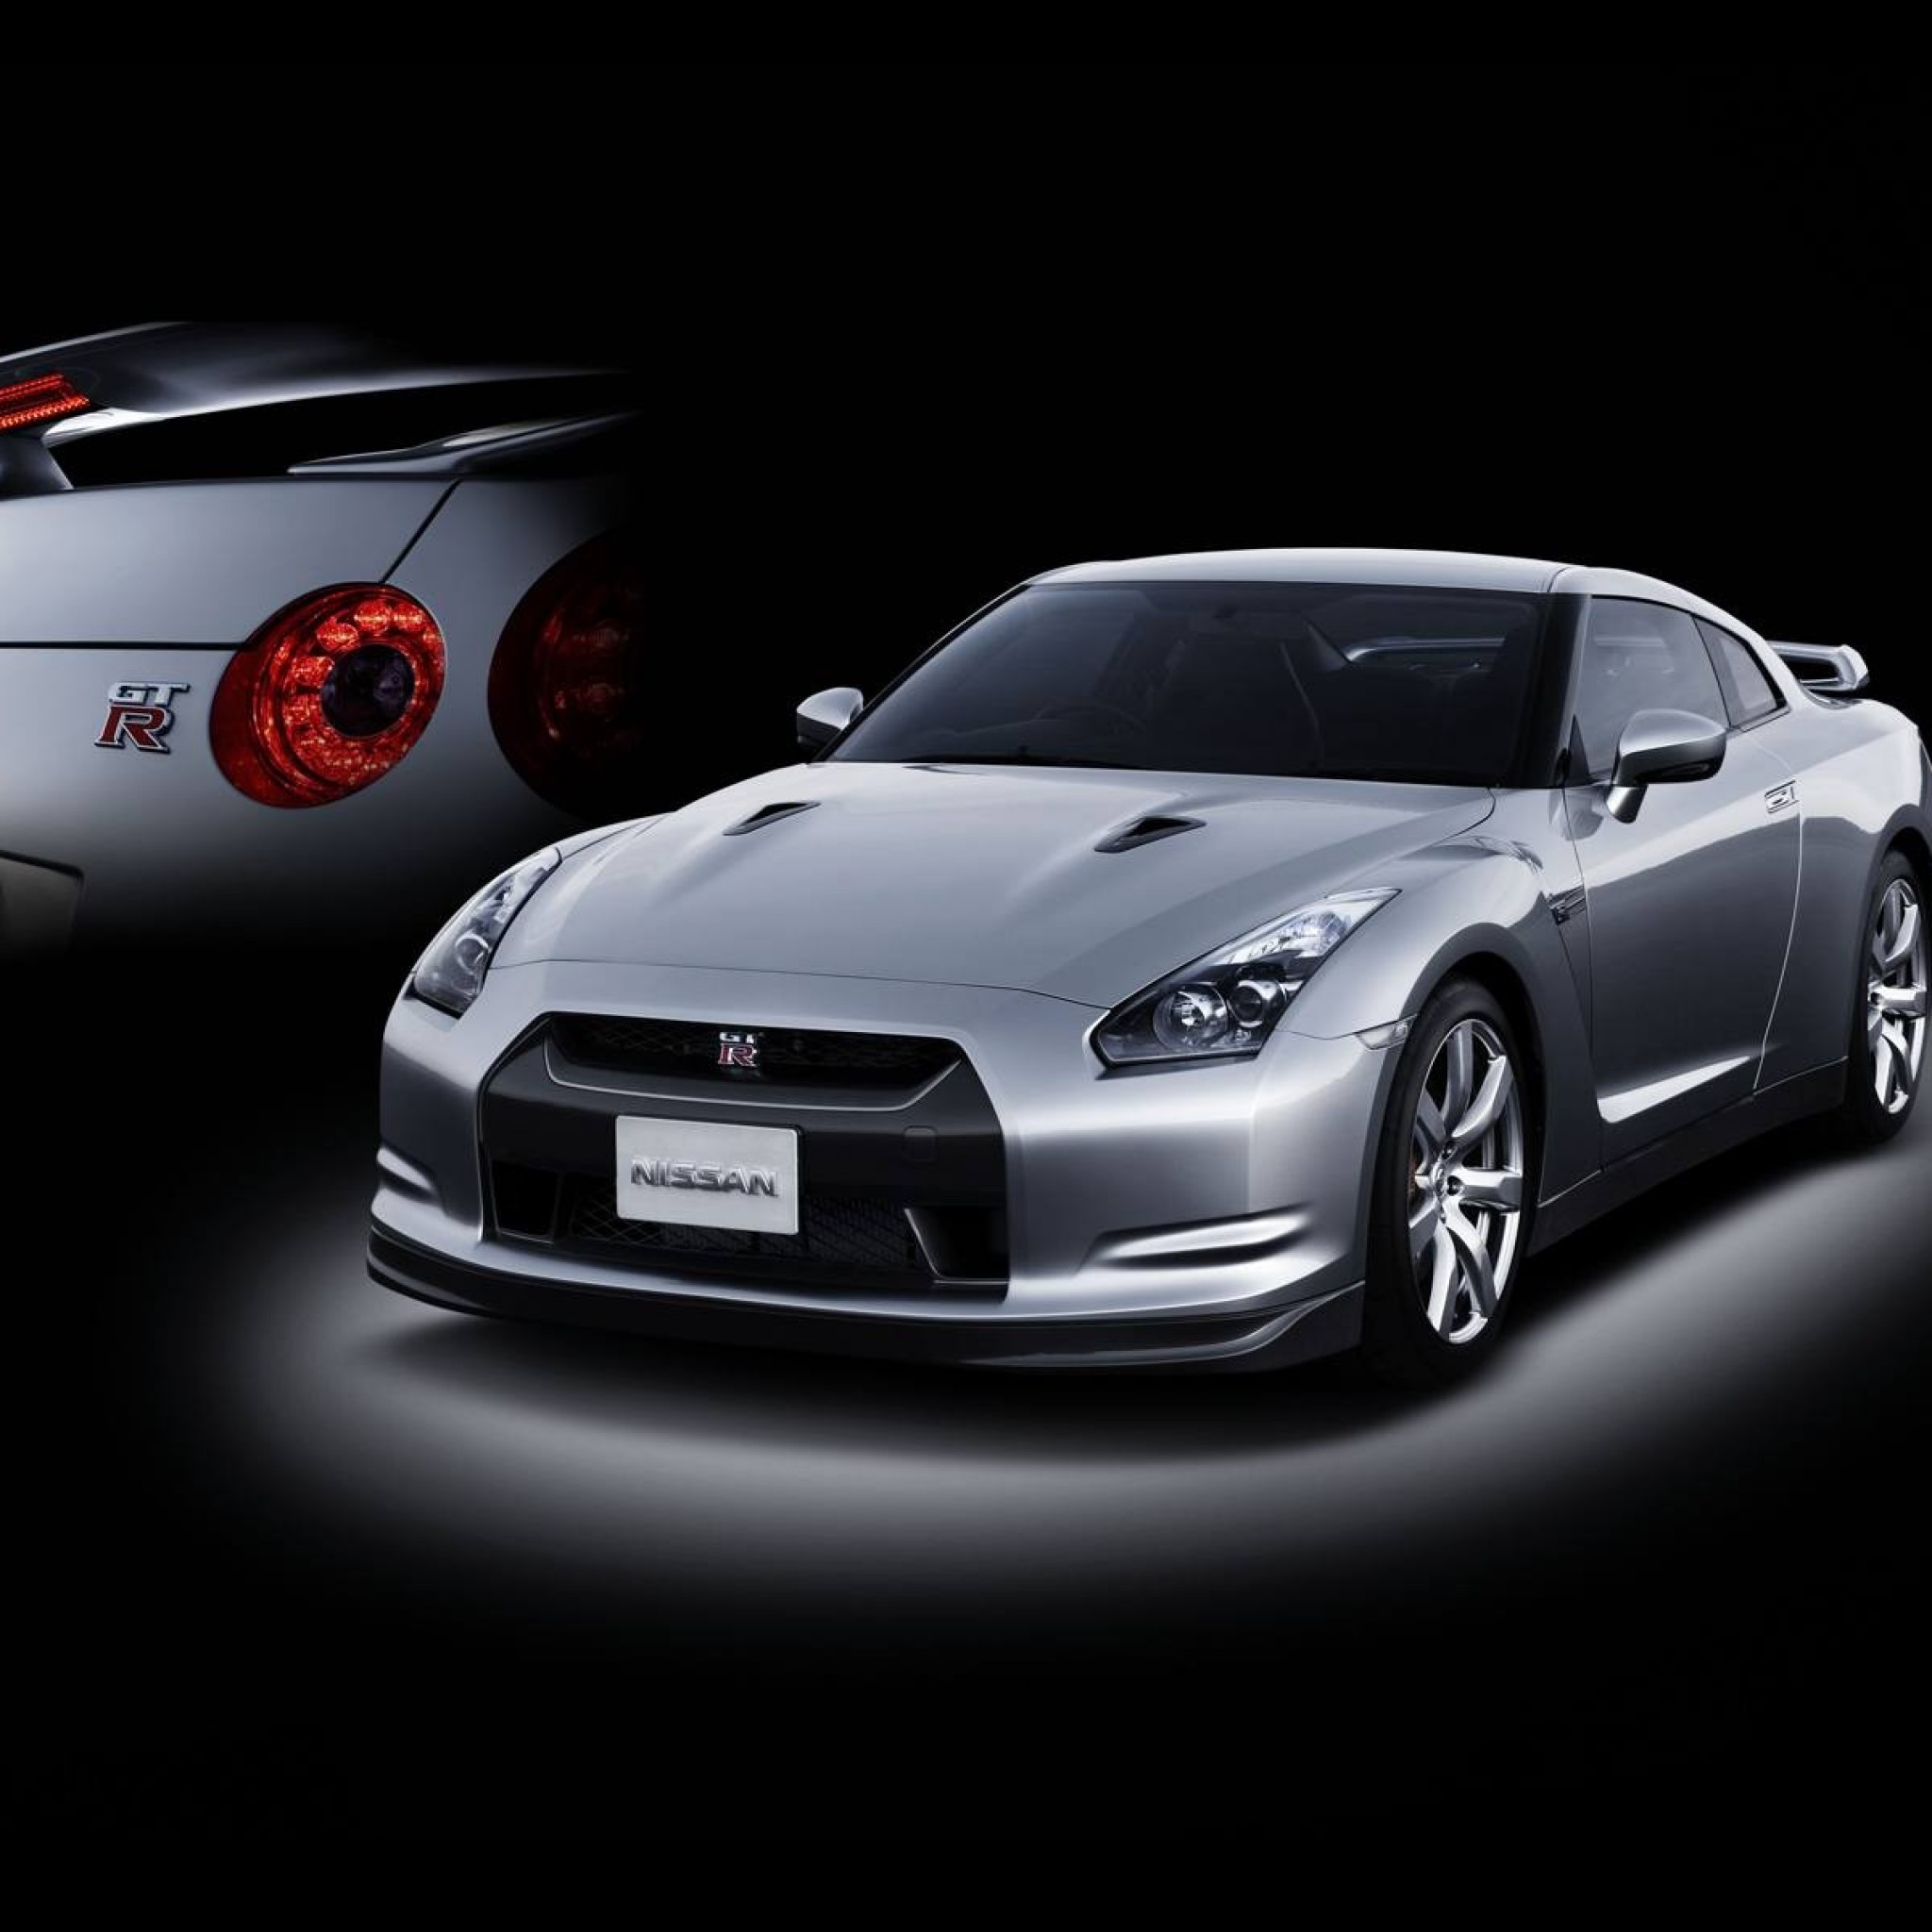 Nissan Gtr Ipad Wallpaper: GTR Phone Wallpaper